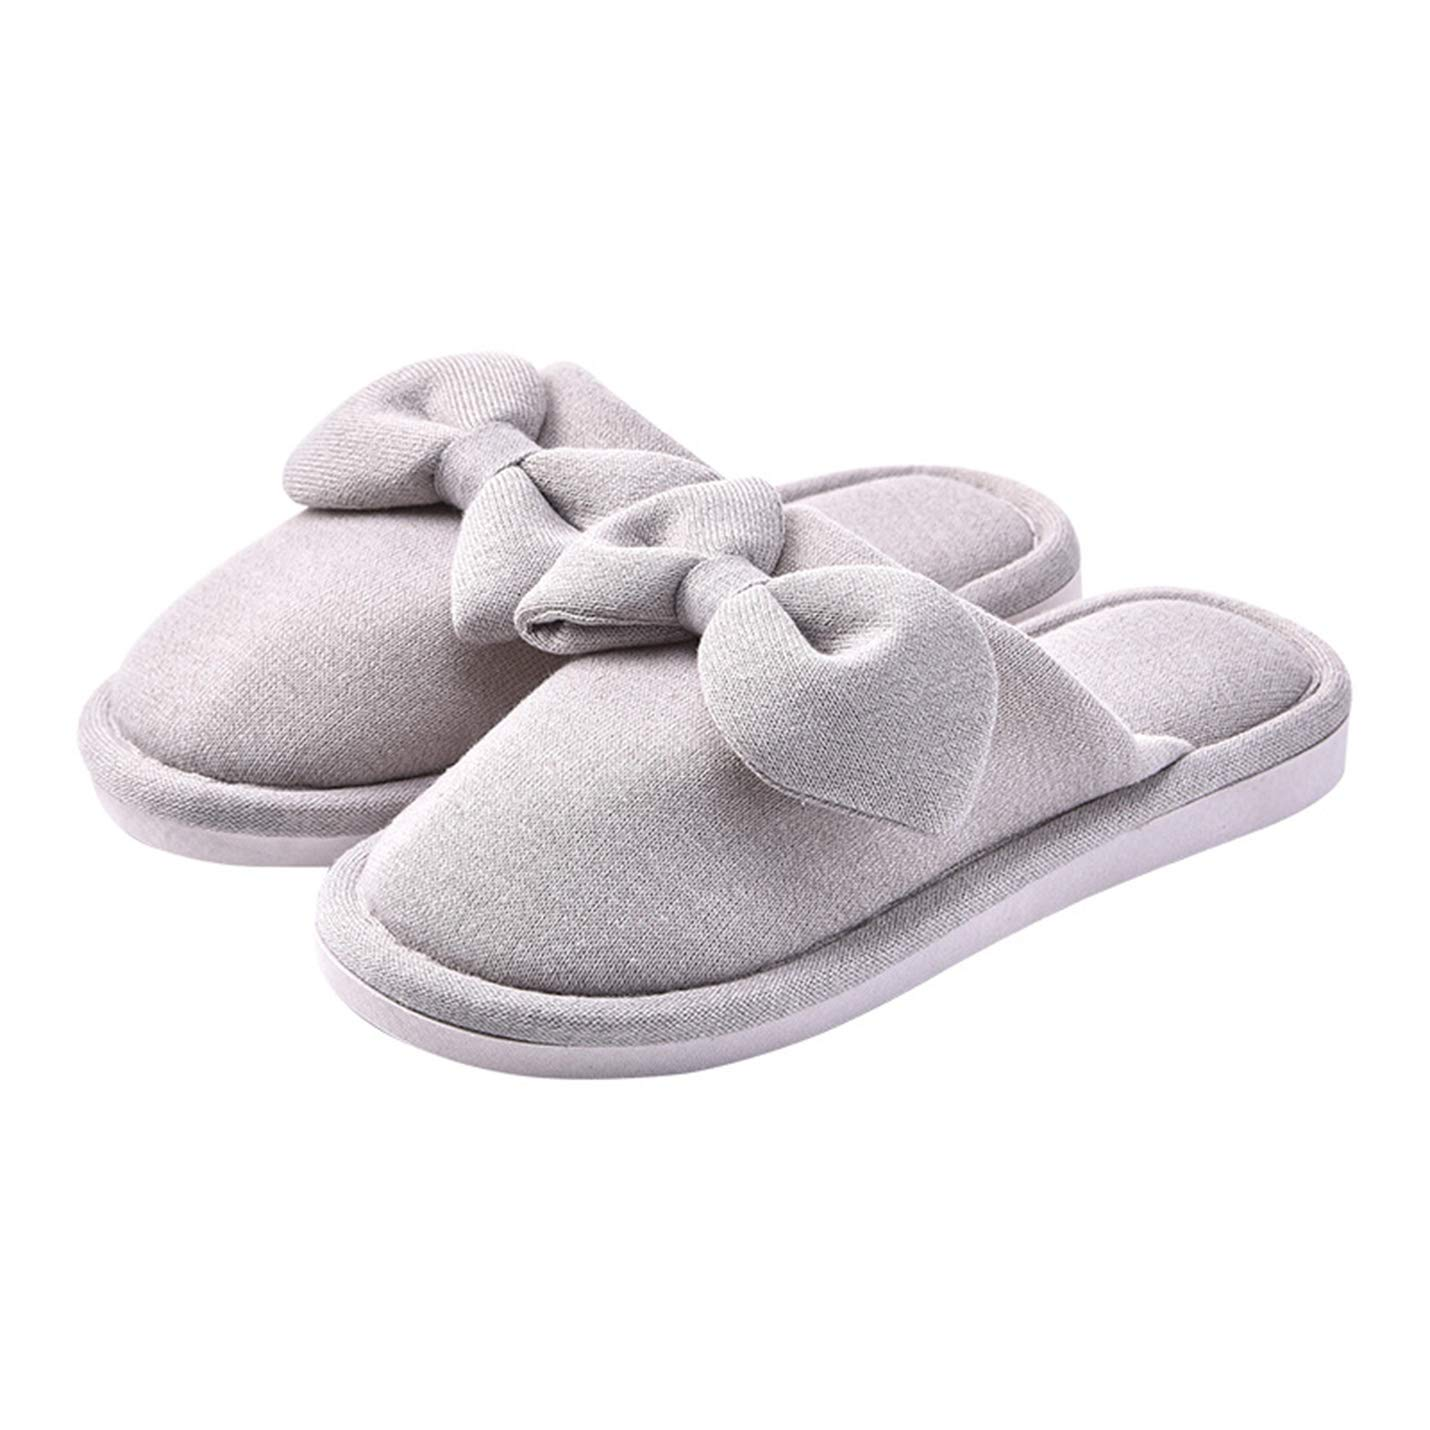 Gihuo Womens Padded Terry Cloth Bowknot Cotton Slip on House Slipper